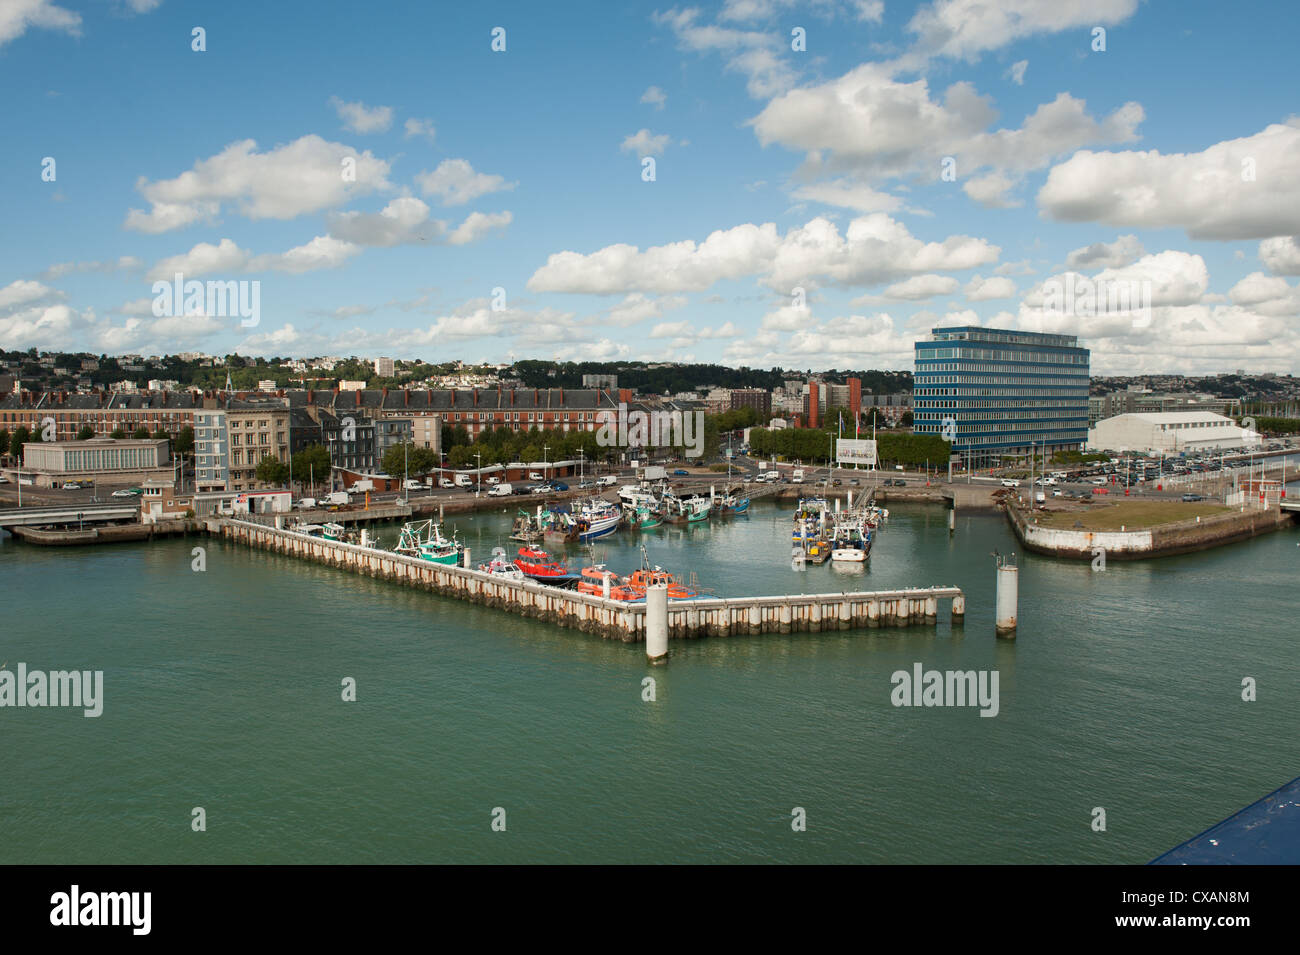 View of the port of Le Harvre in North coast of France - Stock Image